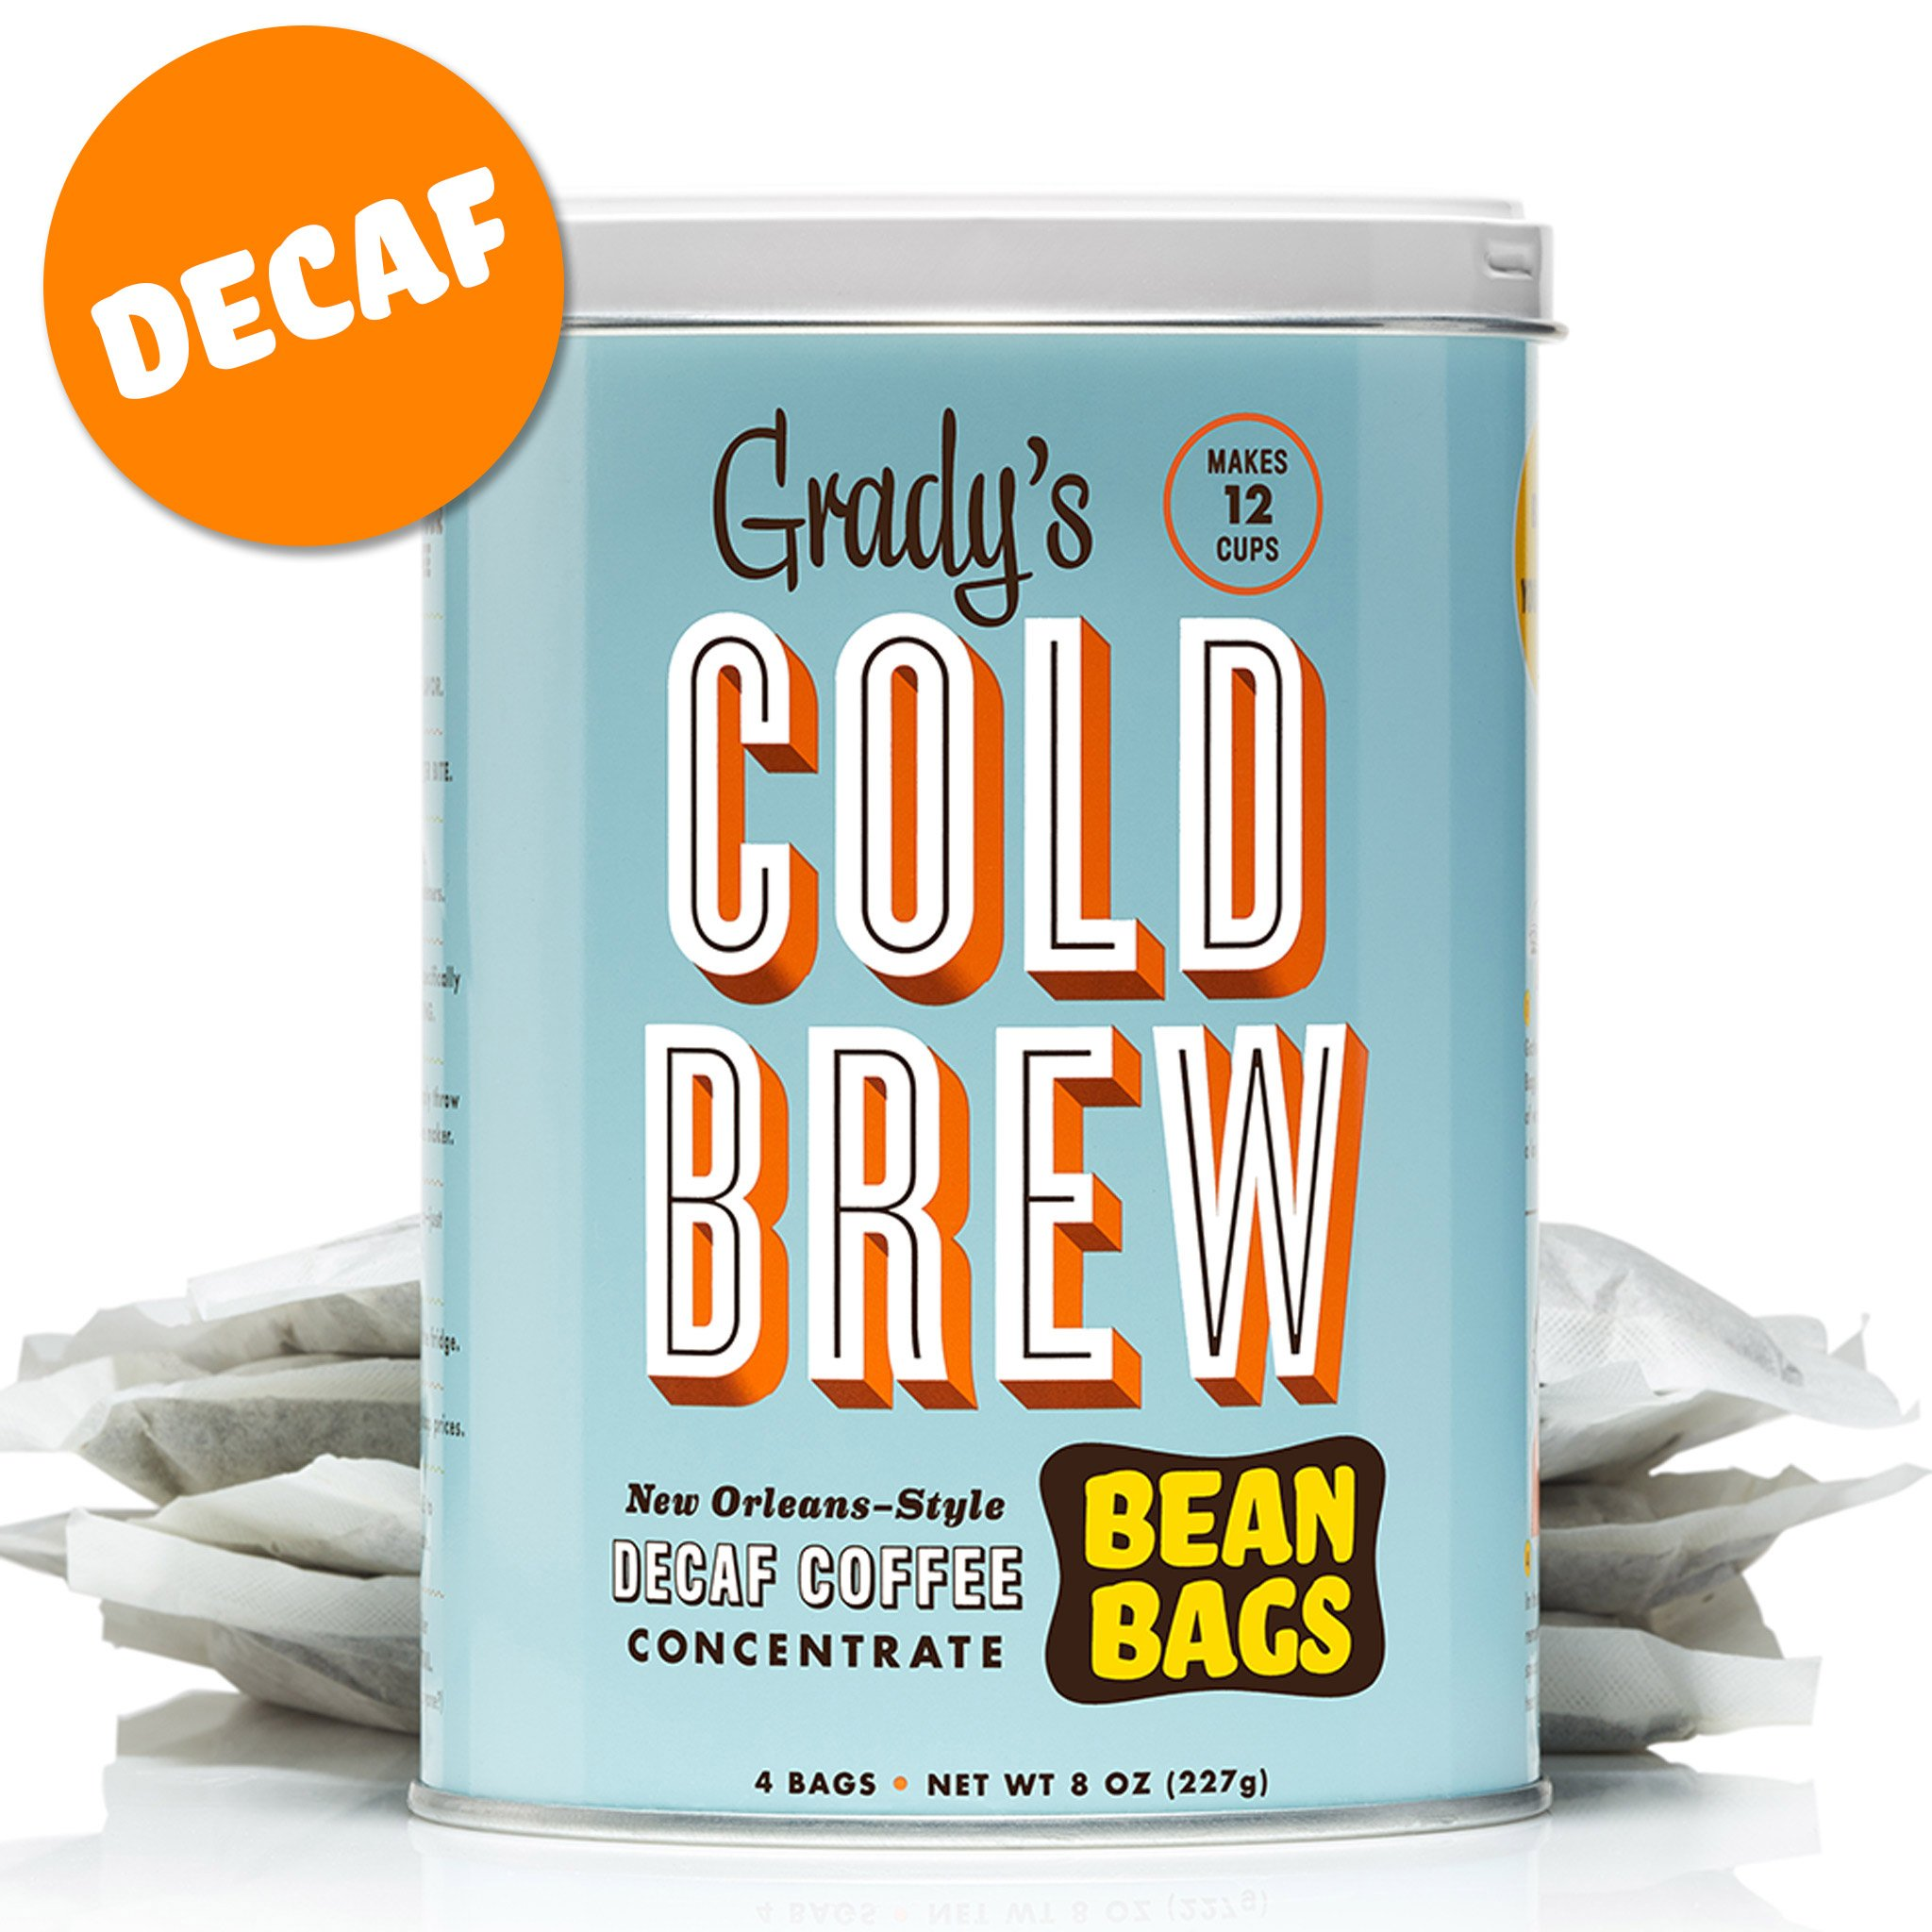 Grady's Cold Brew Iced Decaf Coffee Bean Bags (Decaf, 2 Can)